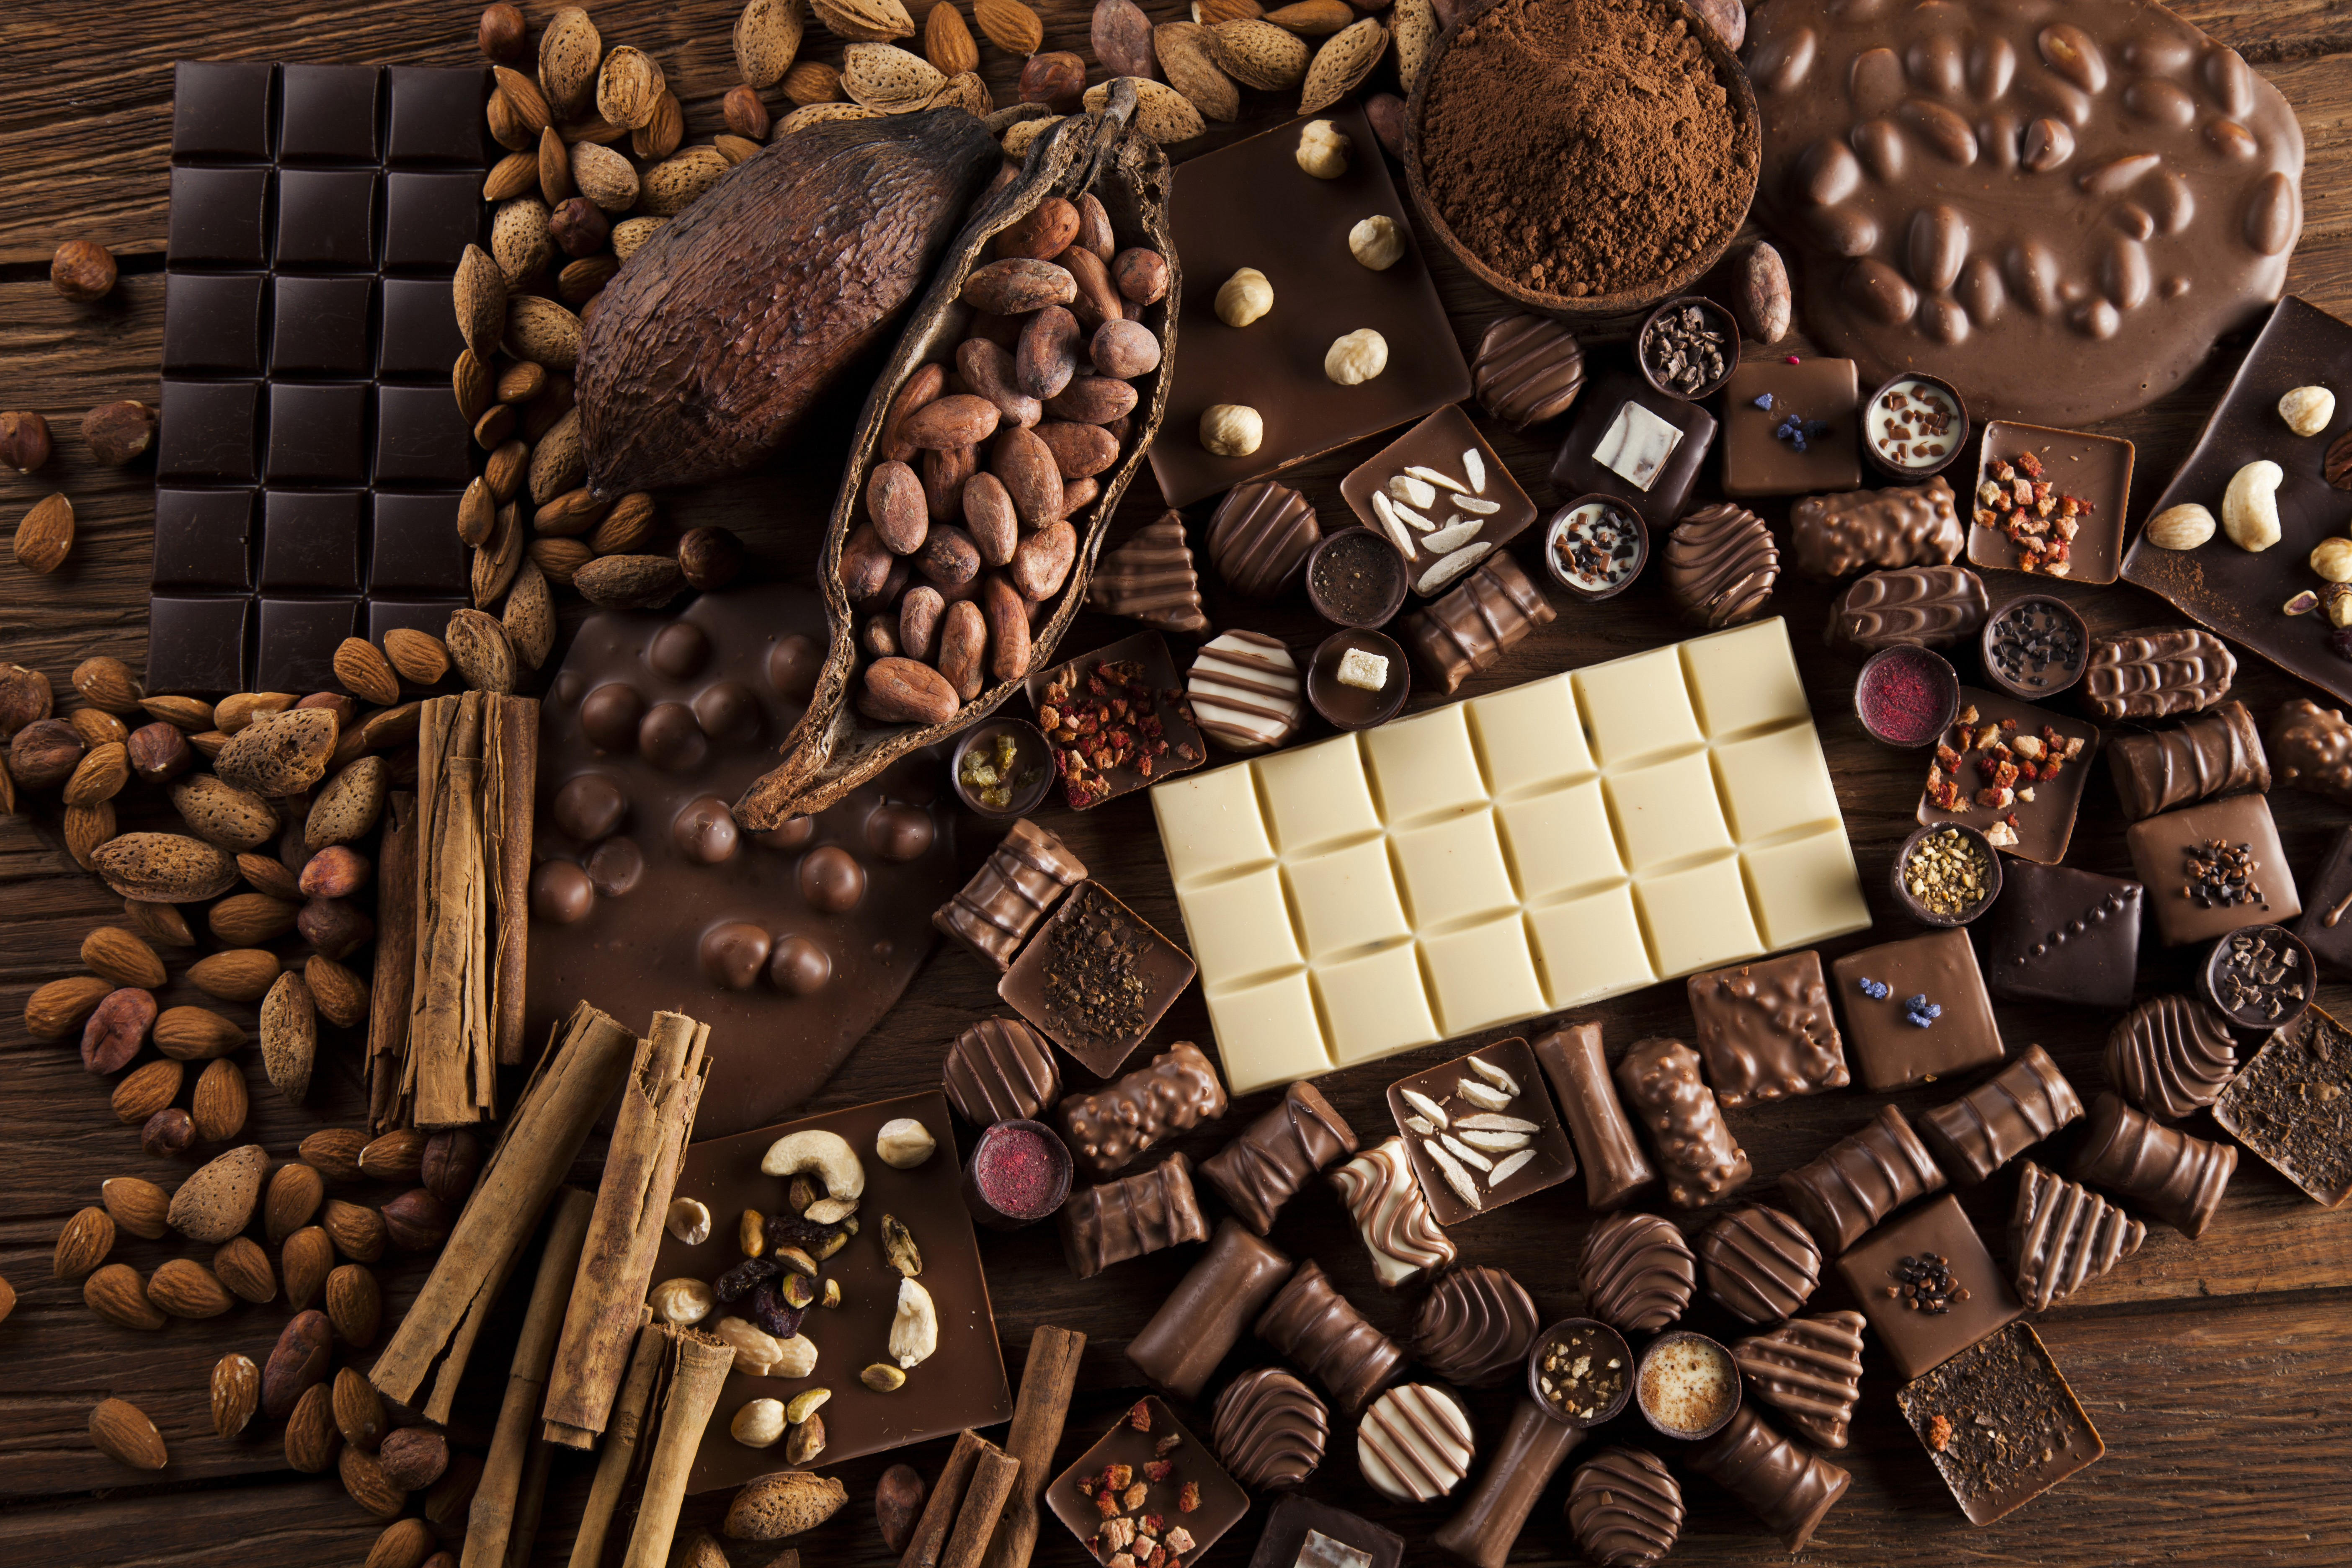 Chocolate Day Hd Wallpaper Wallpaper Chocolate Cocoa Delicious 5k Food 17848